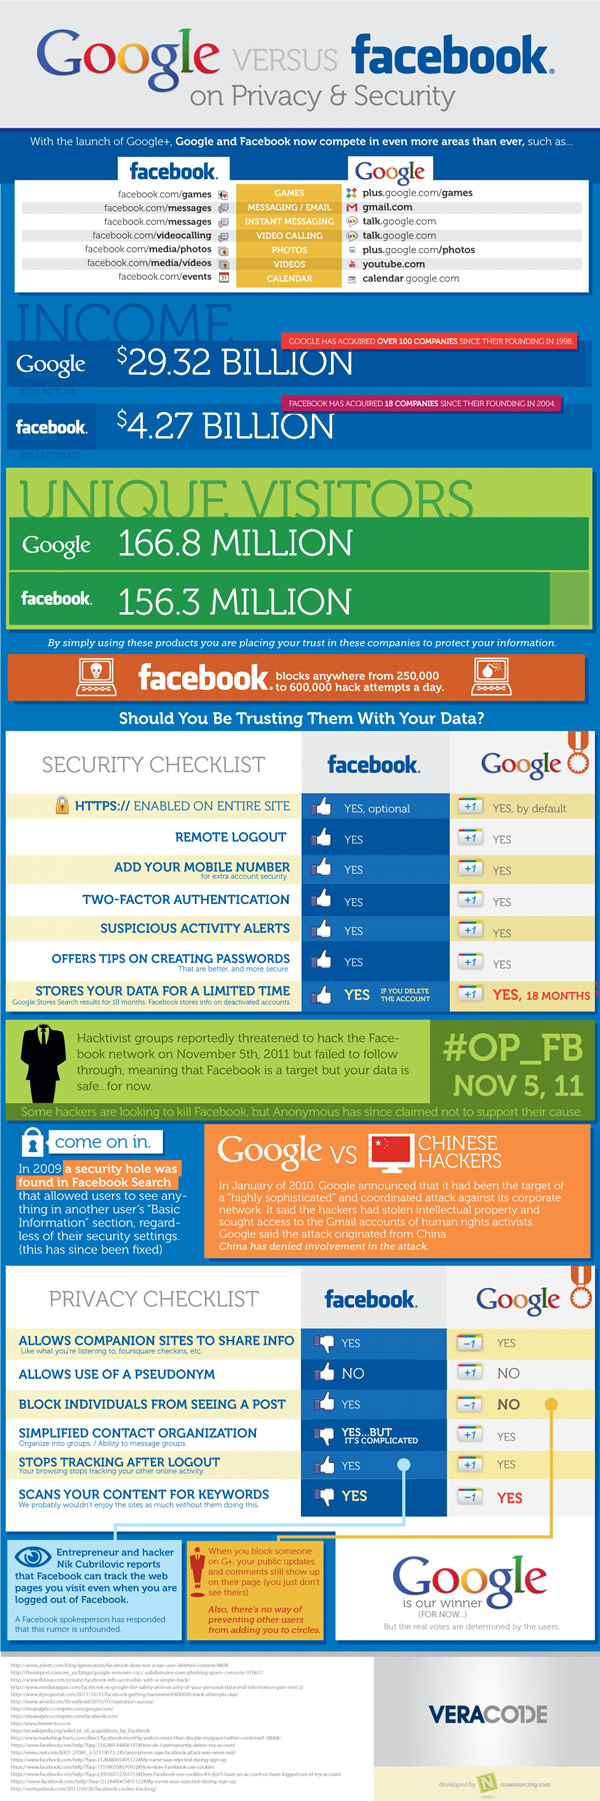 google vs. facebook on privacy security